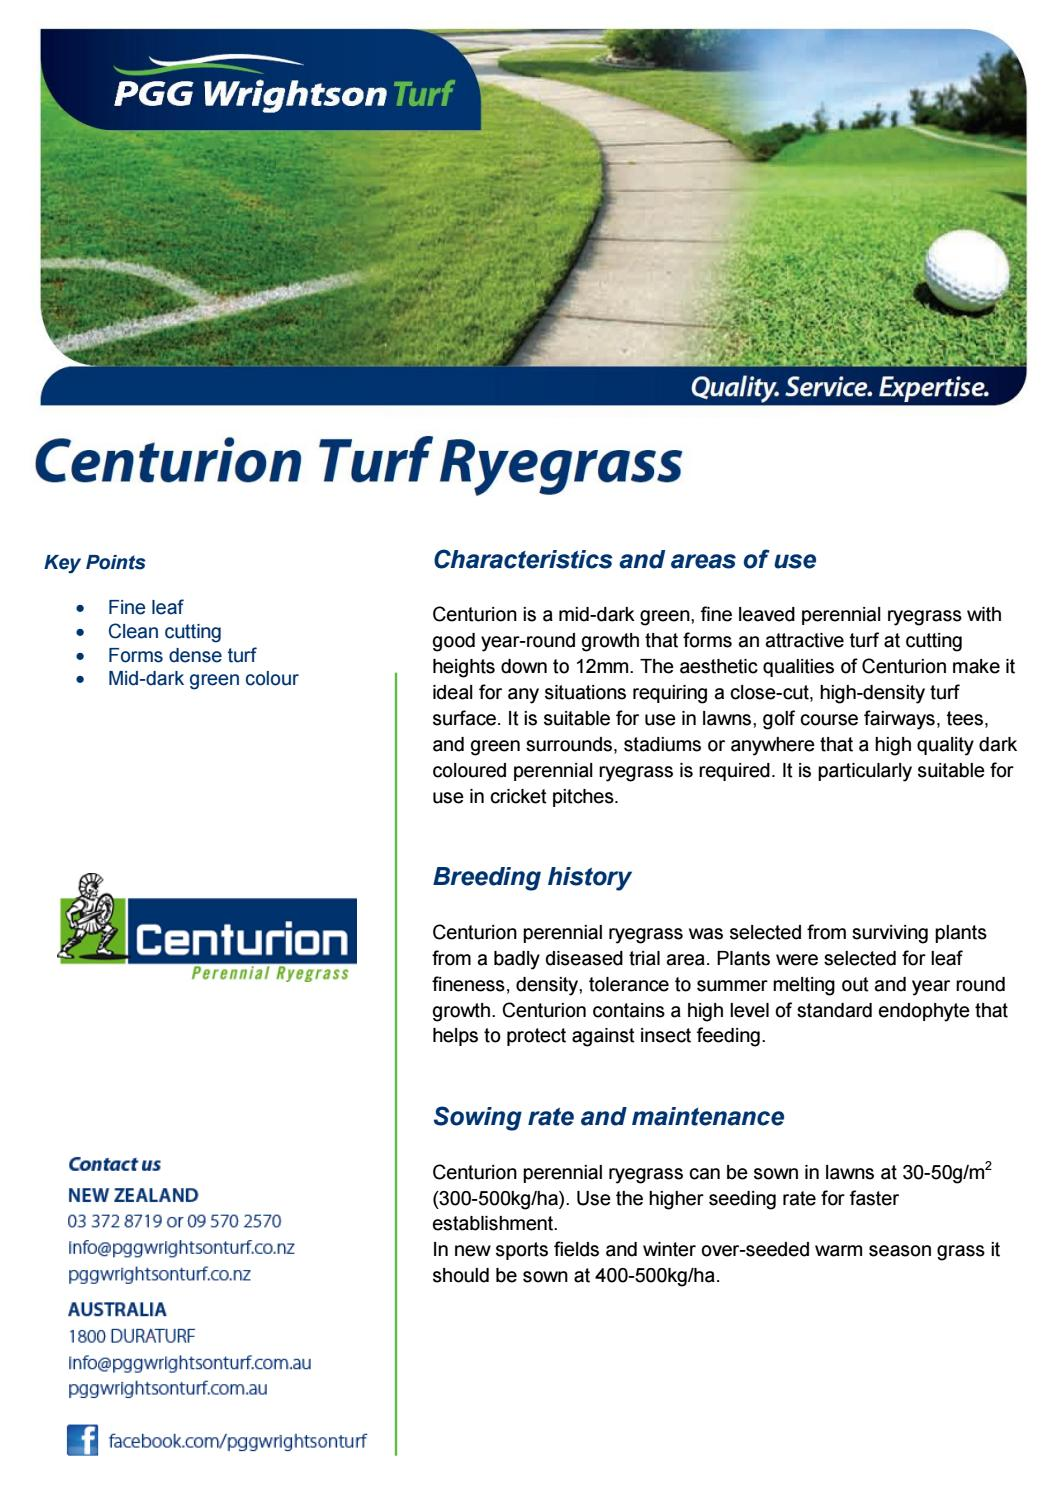 Assetsfilescenutrion by PGG Wrightson Turf - issuu